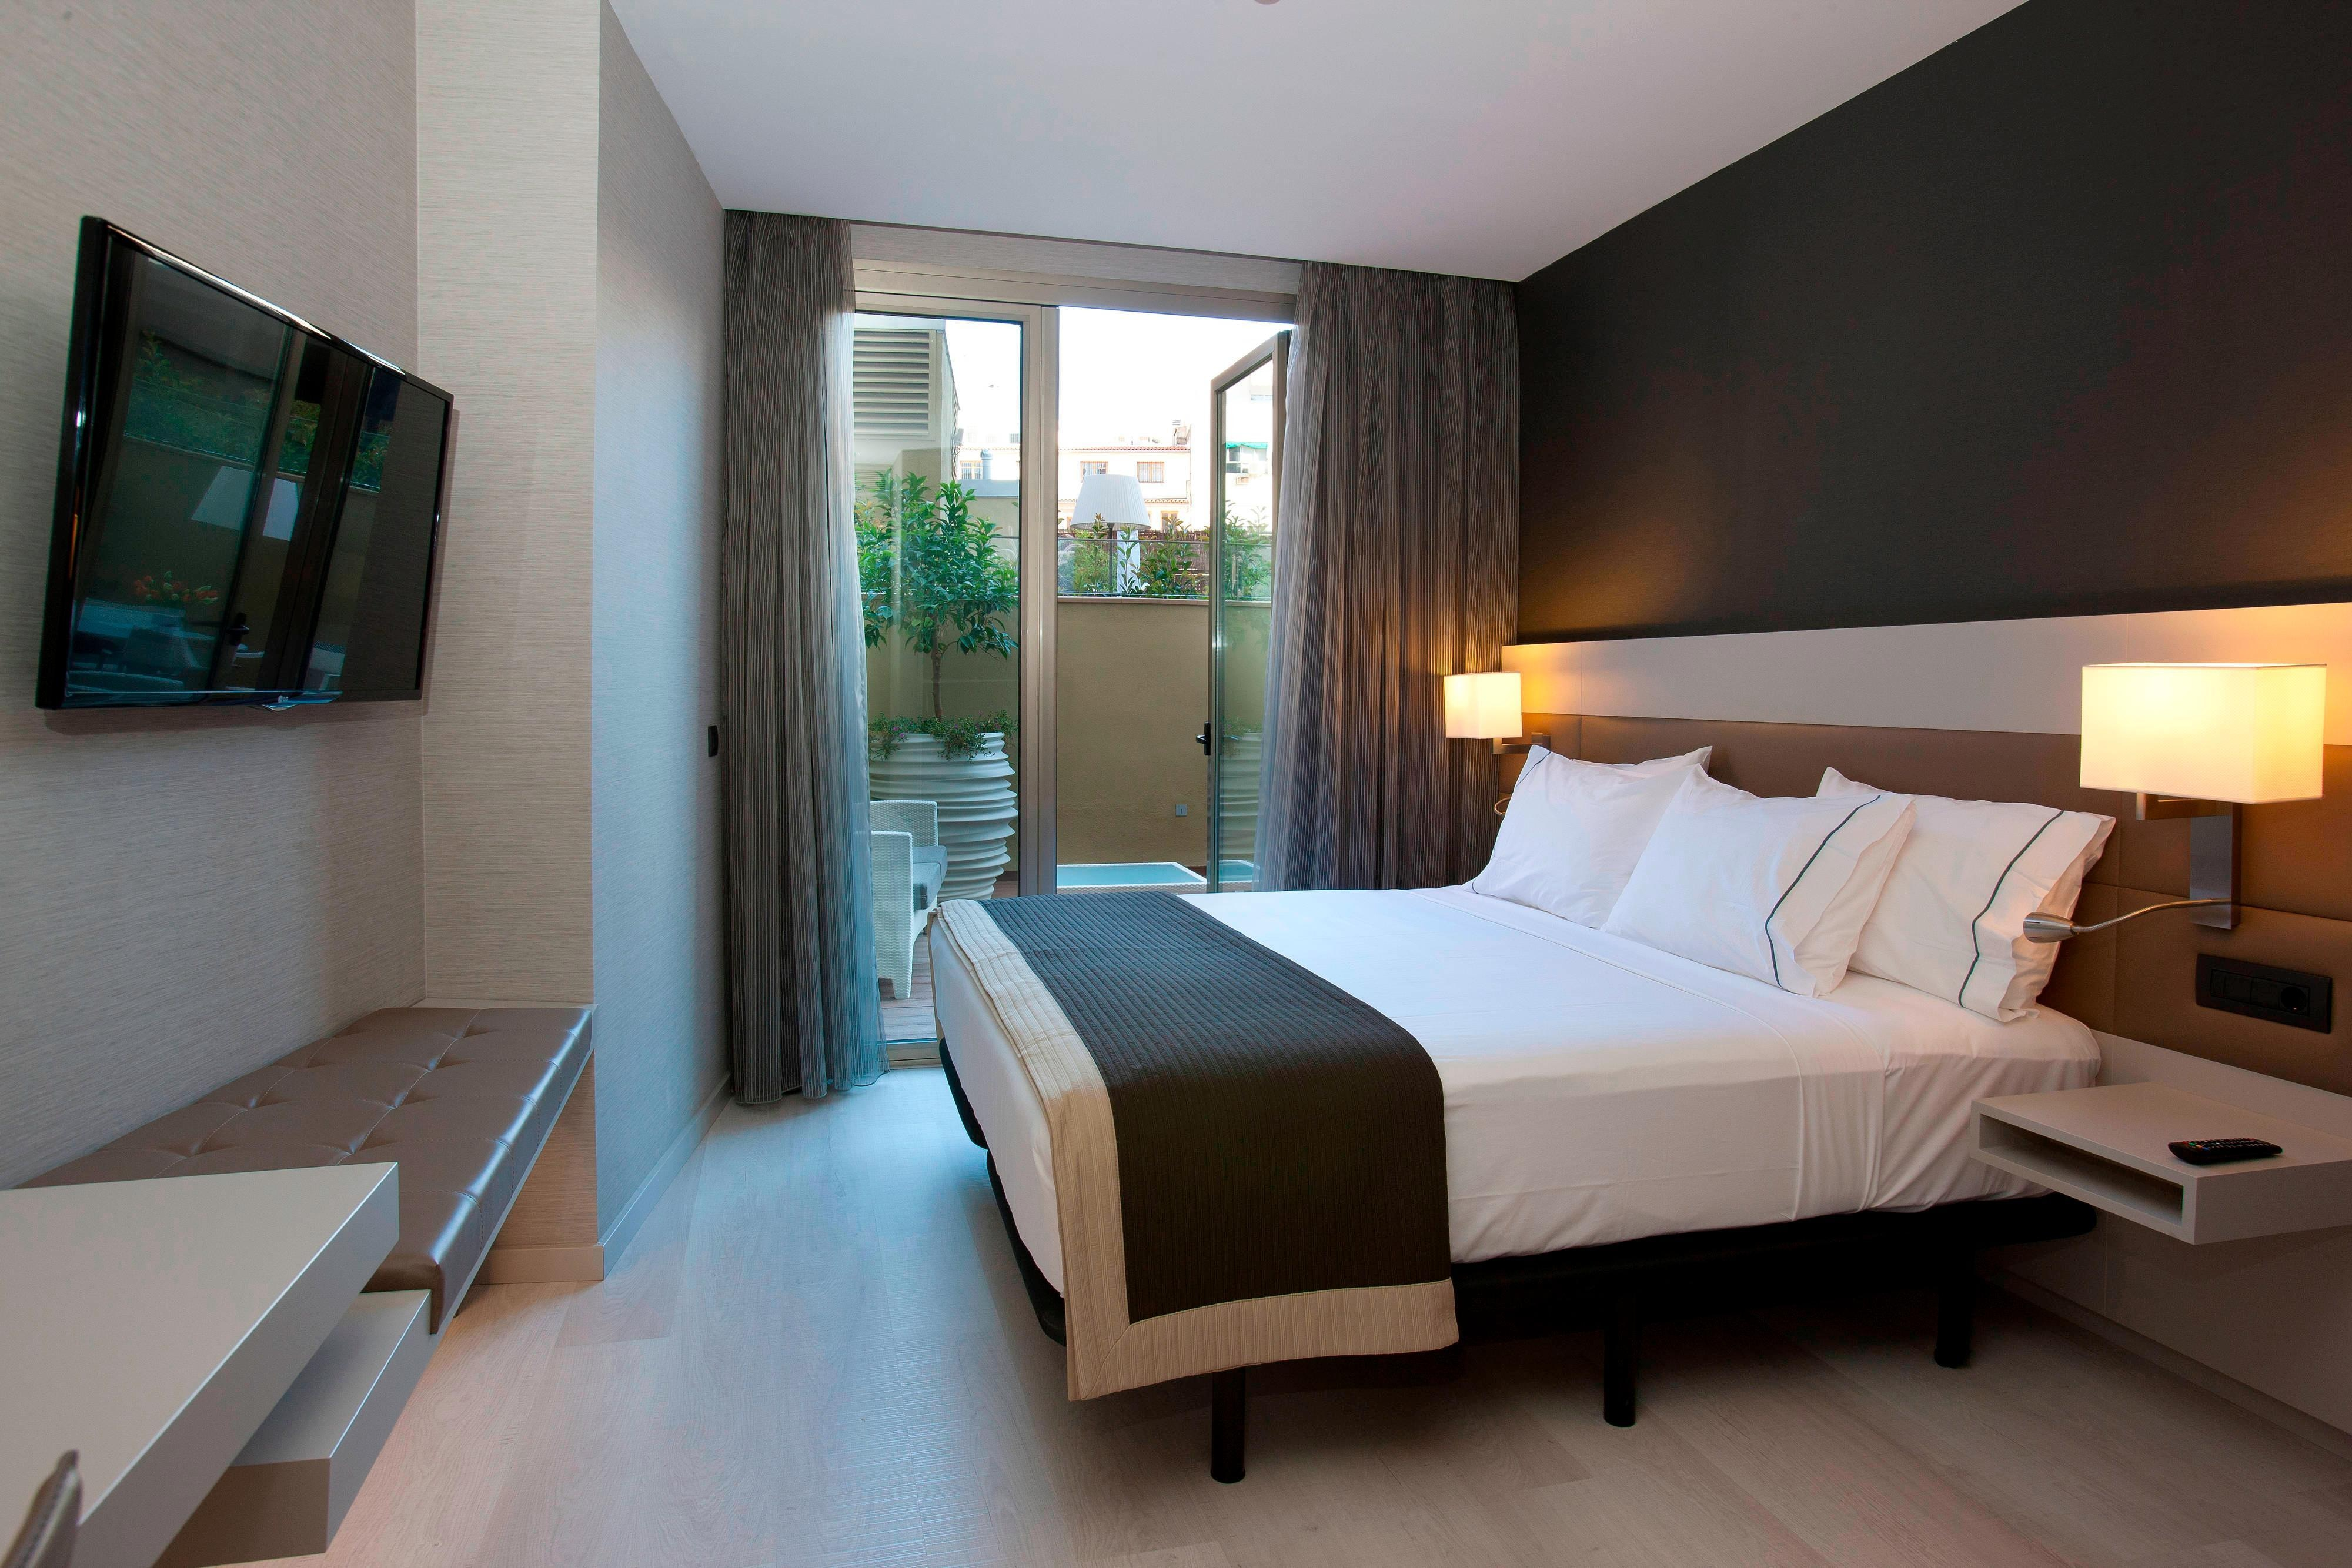 Hotel en Valencia con junior suites